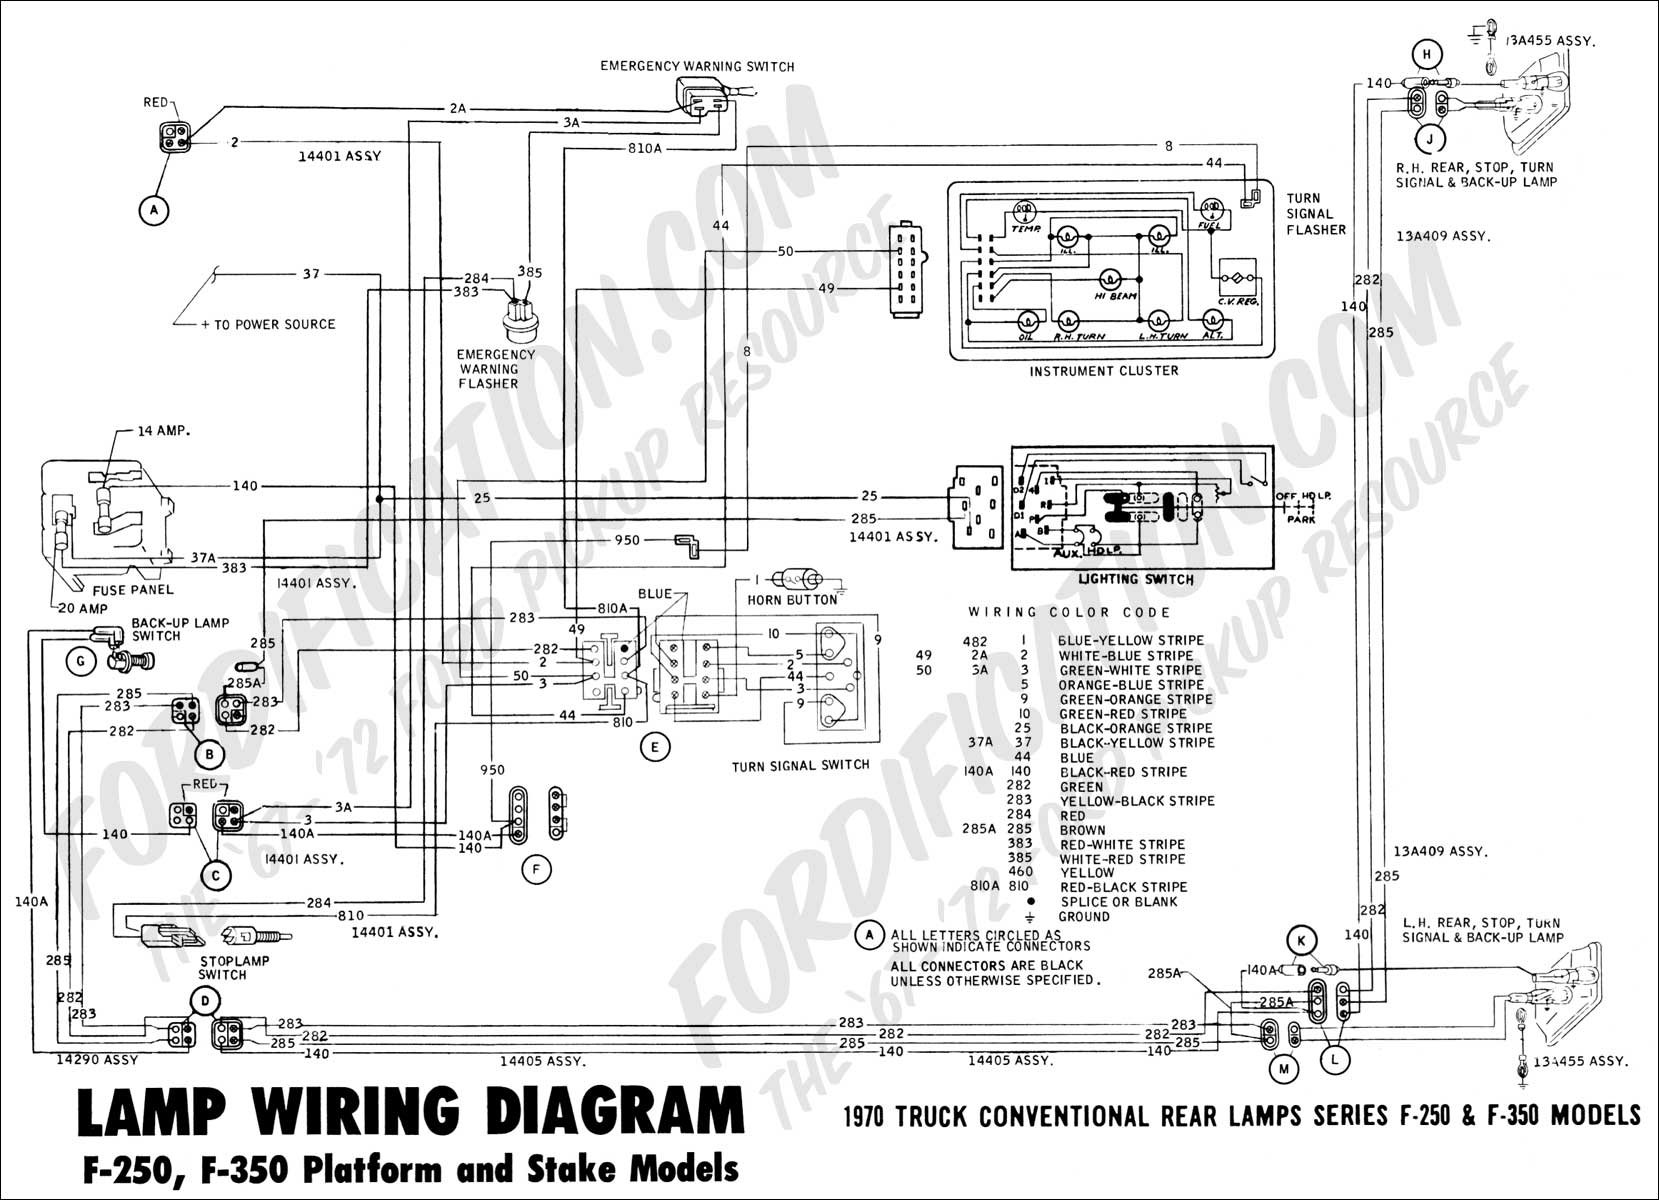 1991 Ford E350 Wiring Diagram Library F 350 Together With 1987 E Truck Technical Drawings And Schematics Section H E150 Conversion Van 1990 Computer Diesel